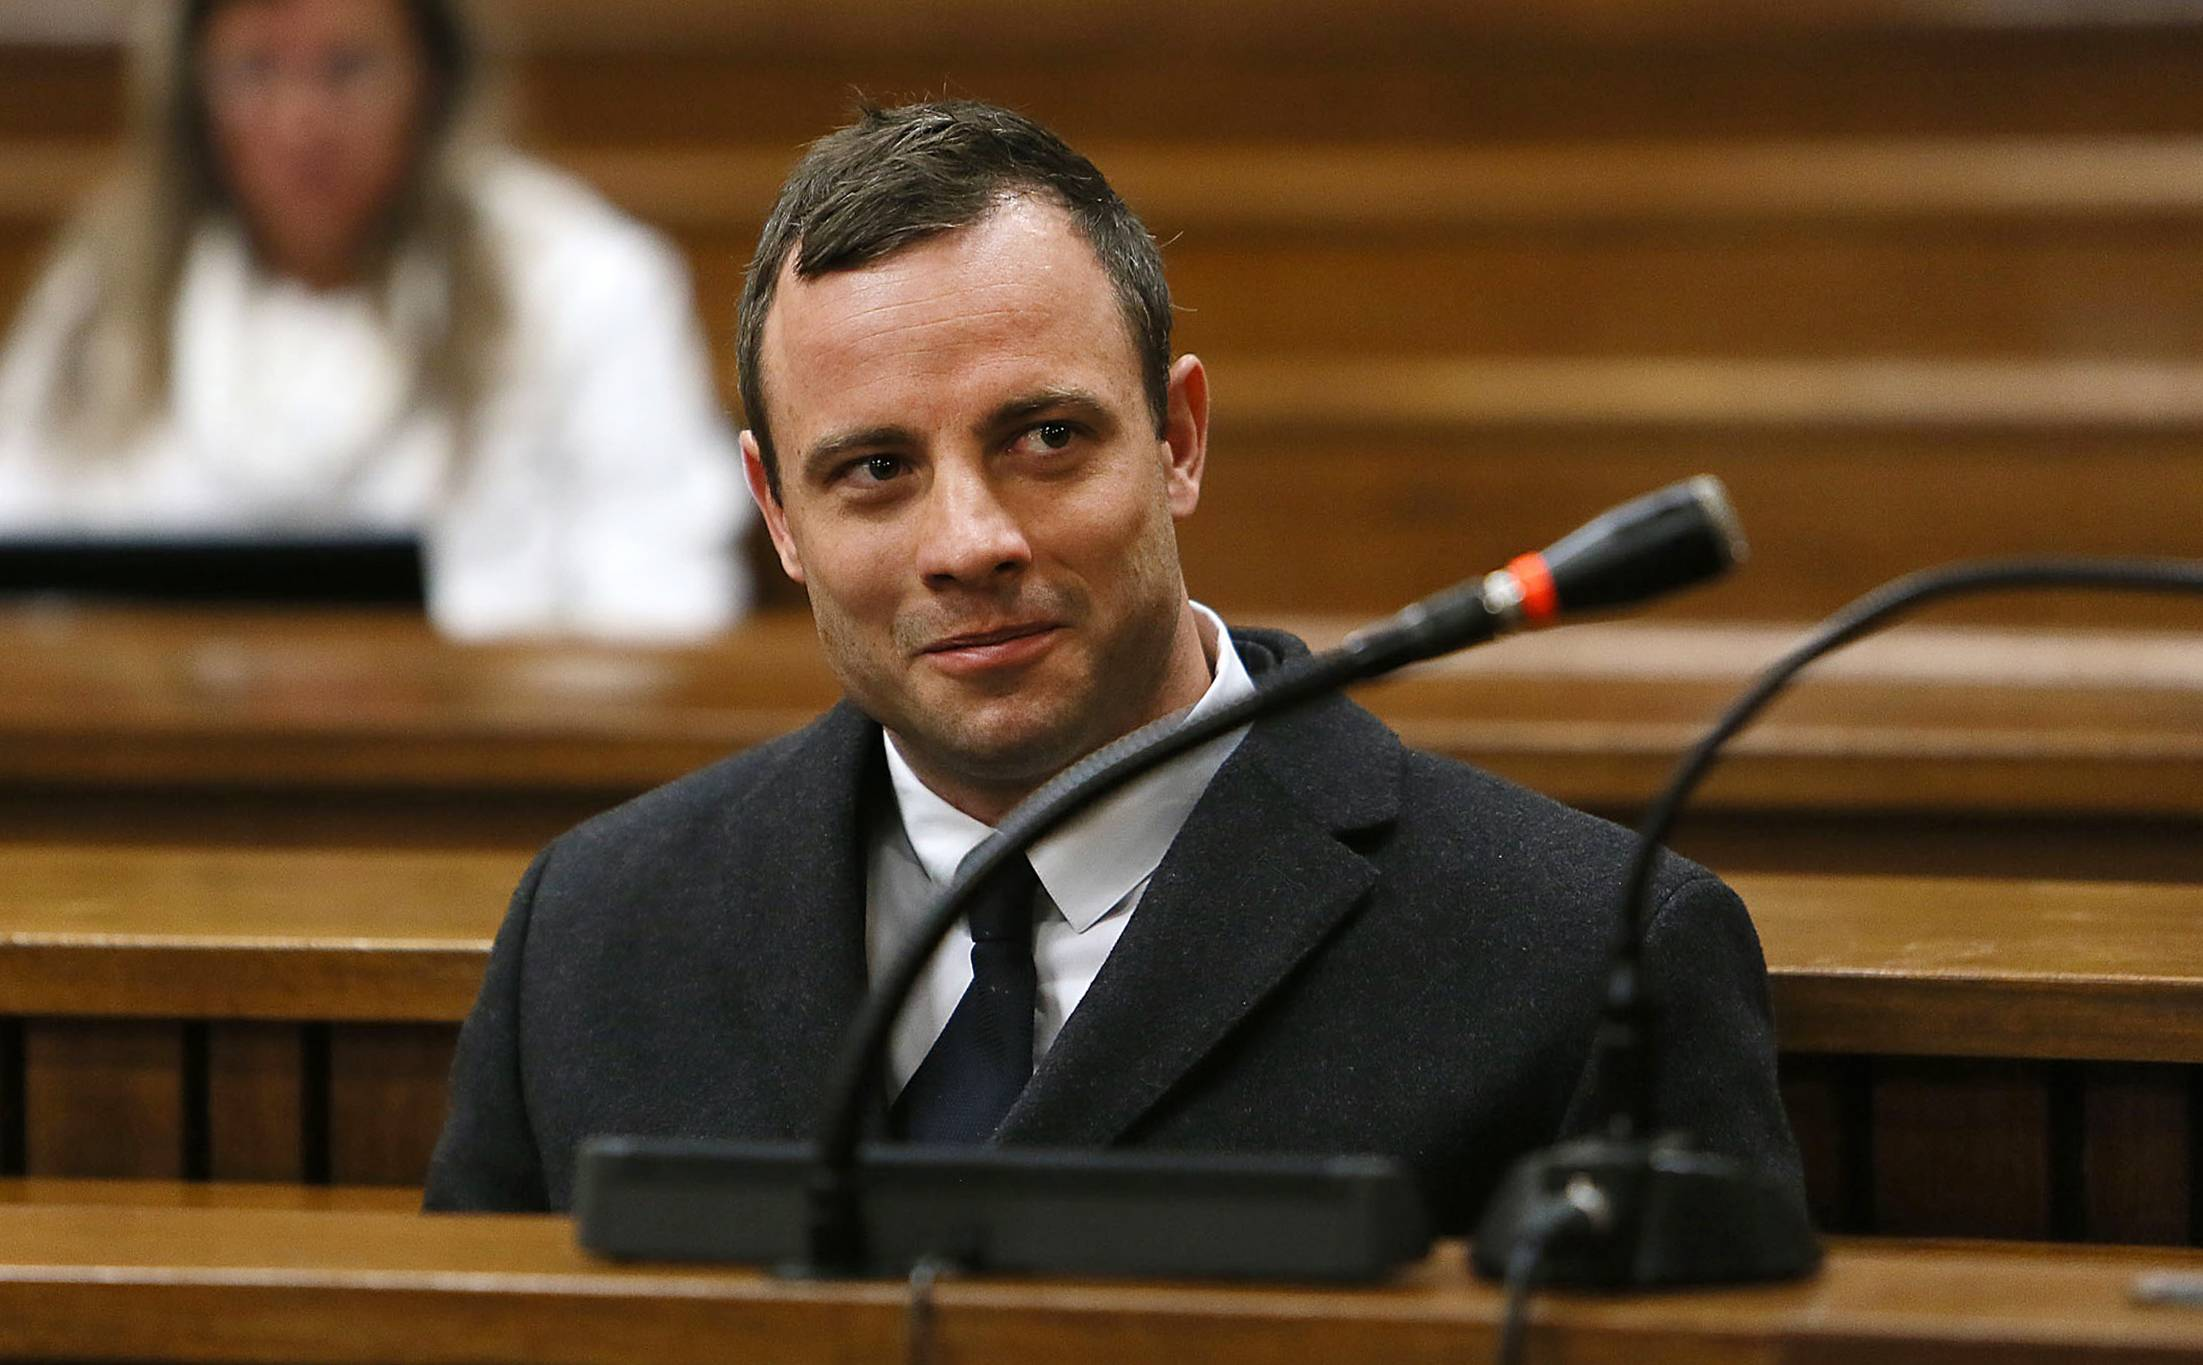 In newspaper reports, Oscar Pistorius has been accused of an aggressive altercation at a Johannesburg nightclub he visited last weekend. A spokeswoman for the Pistorius family said an argument ensued and the athlete, who is free on bail, soon left the club.